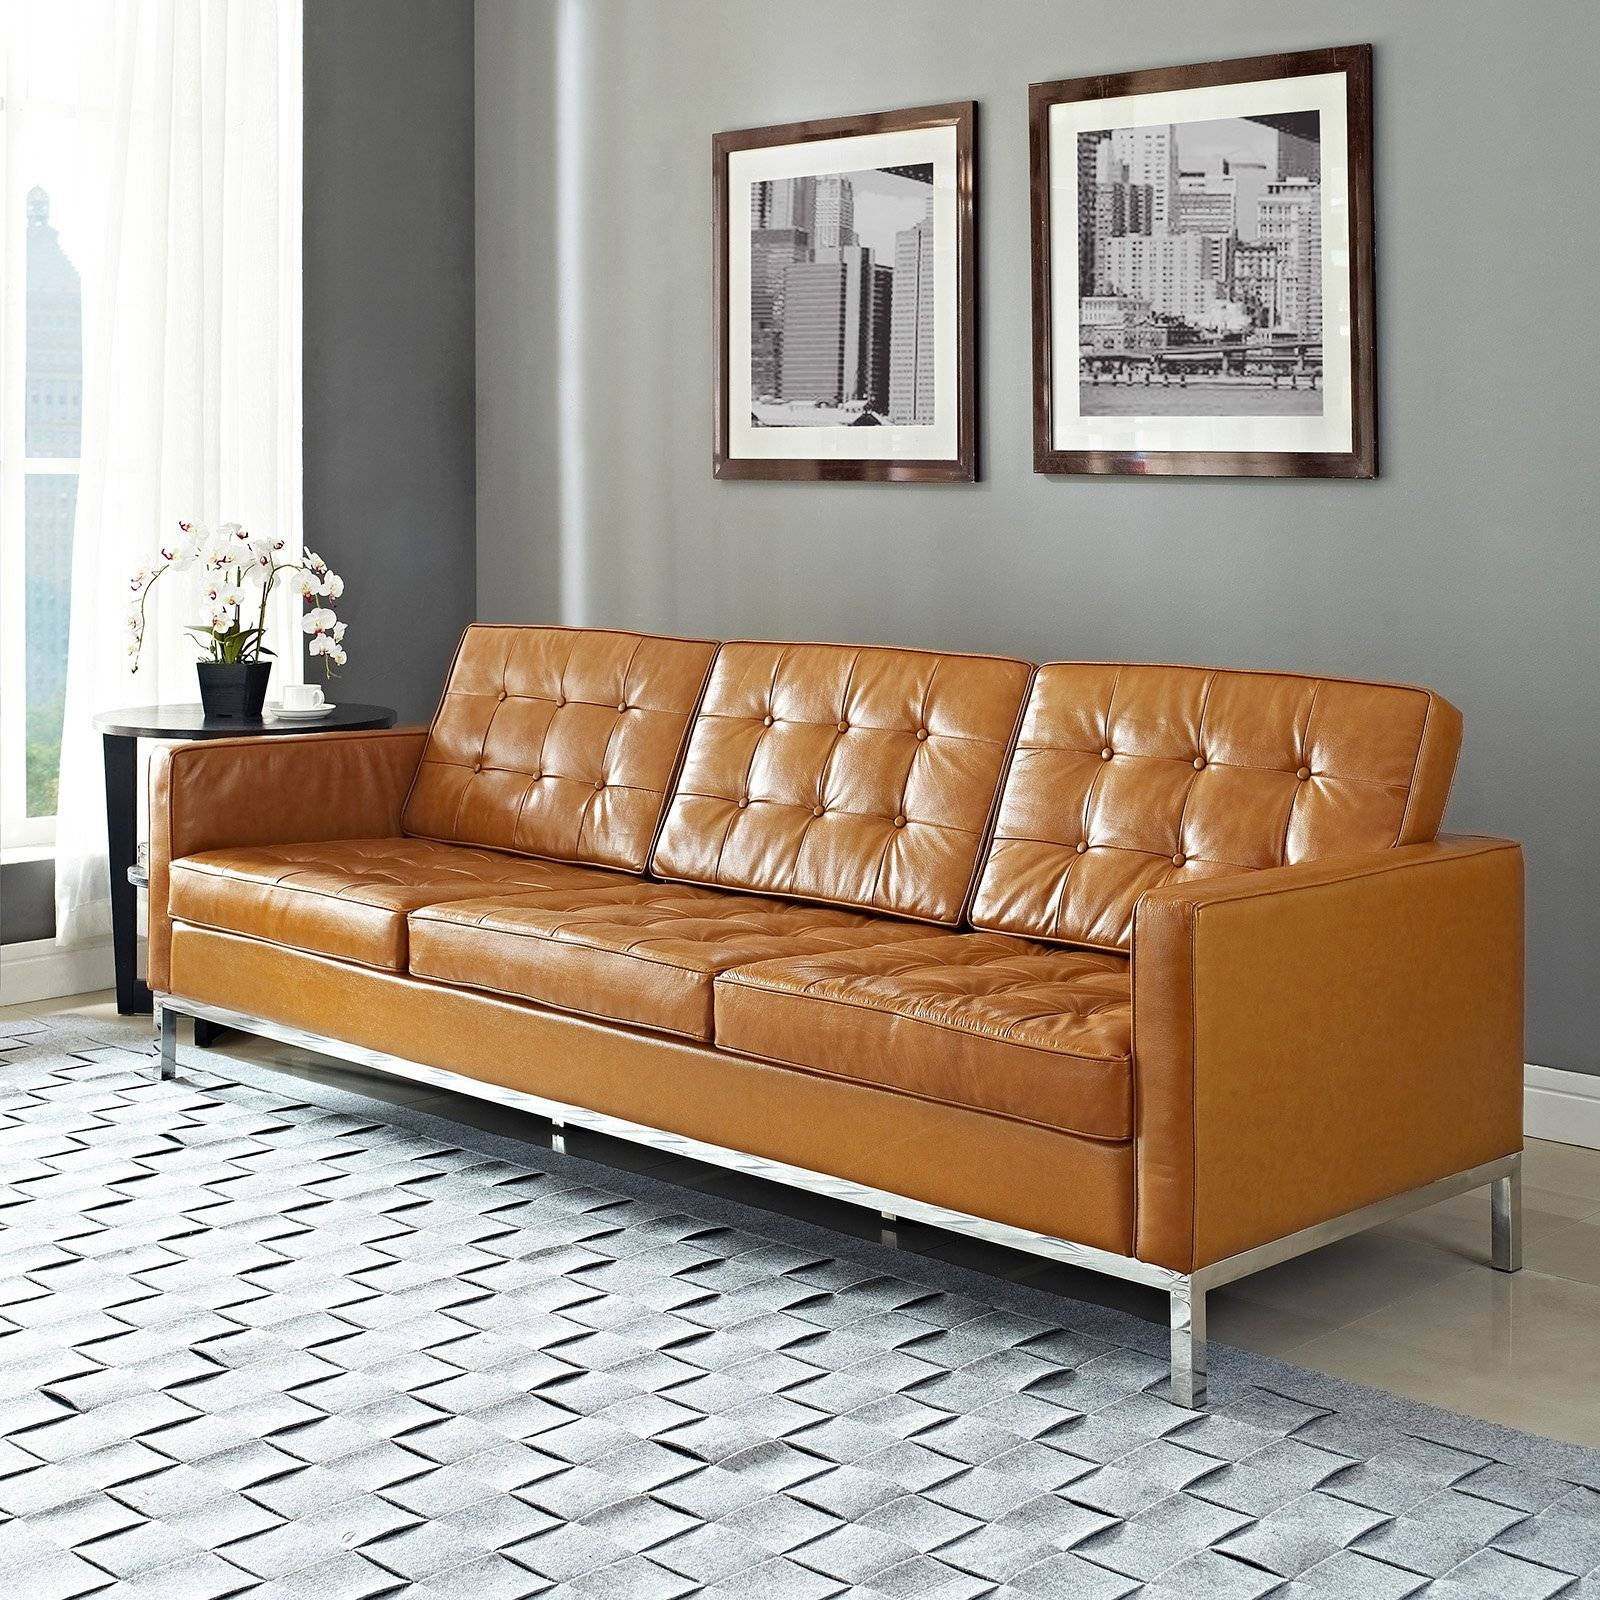 Modway Loft Leather Sofa | Hayneedle For Caramel Leather Sofas (View 11 of 15)